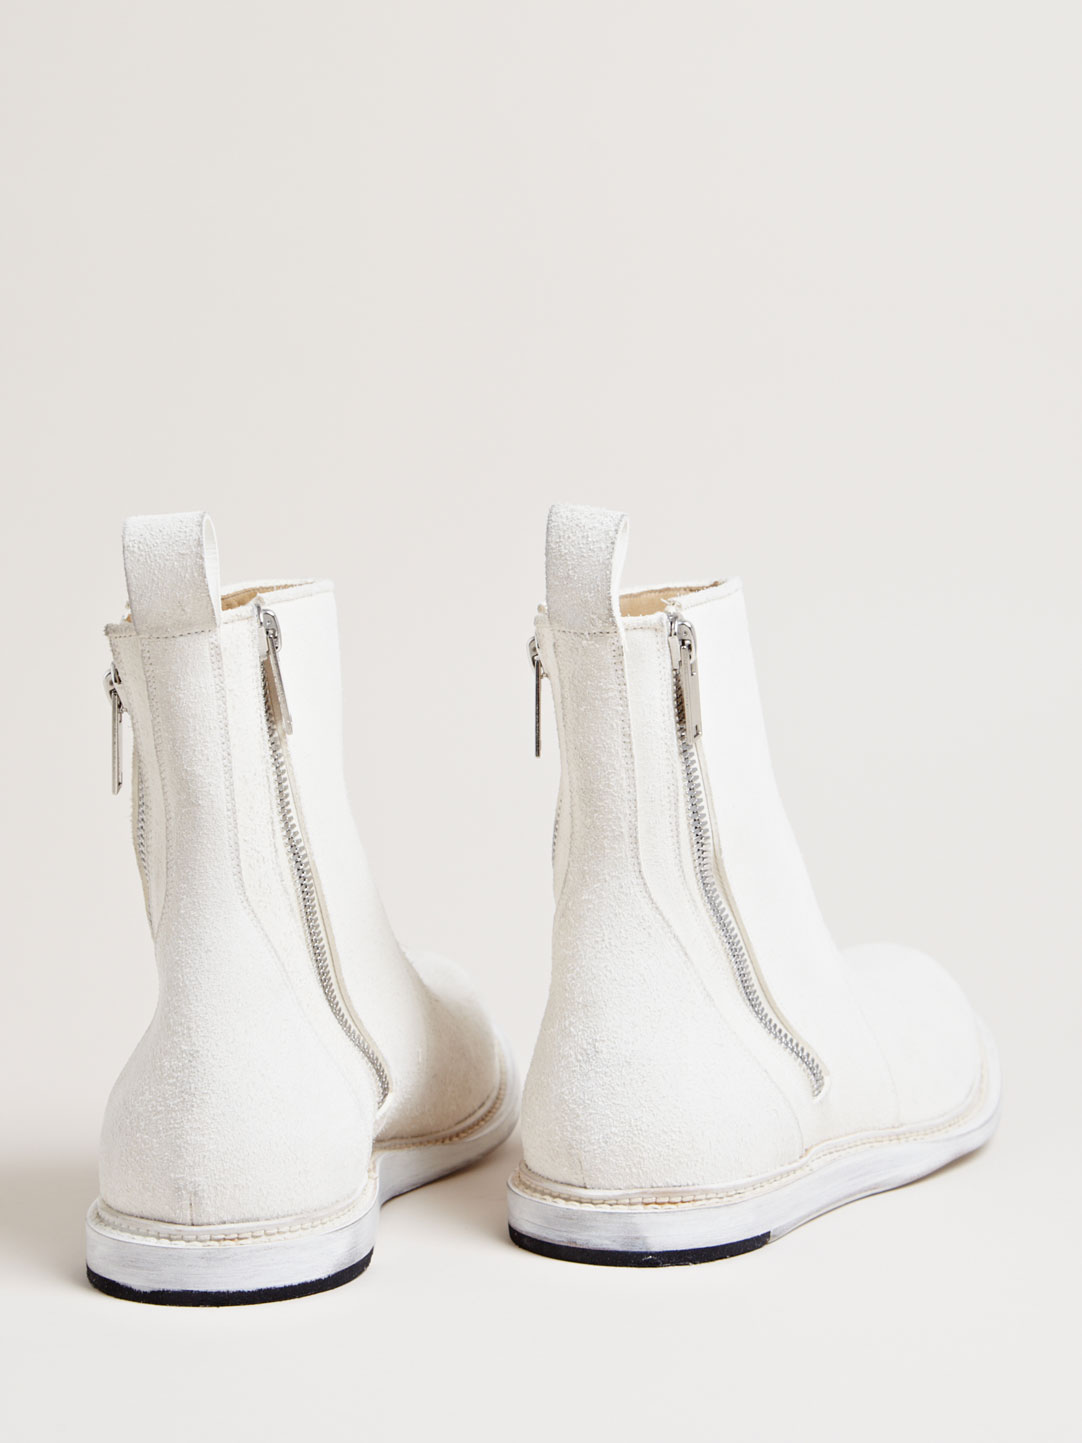 Milk White Zip Boots Rick Owens brushed leather 2